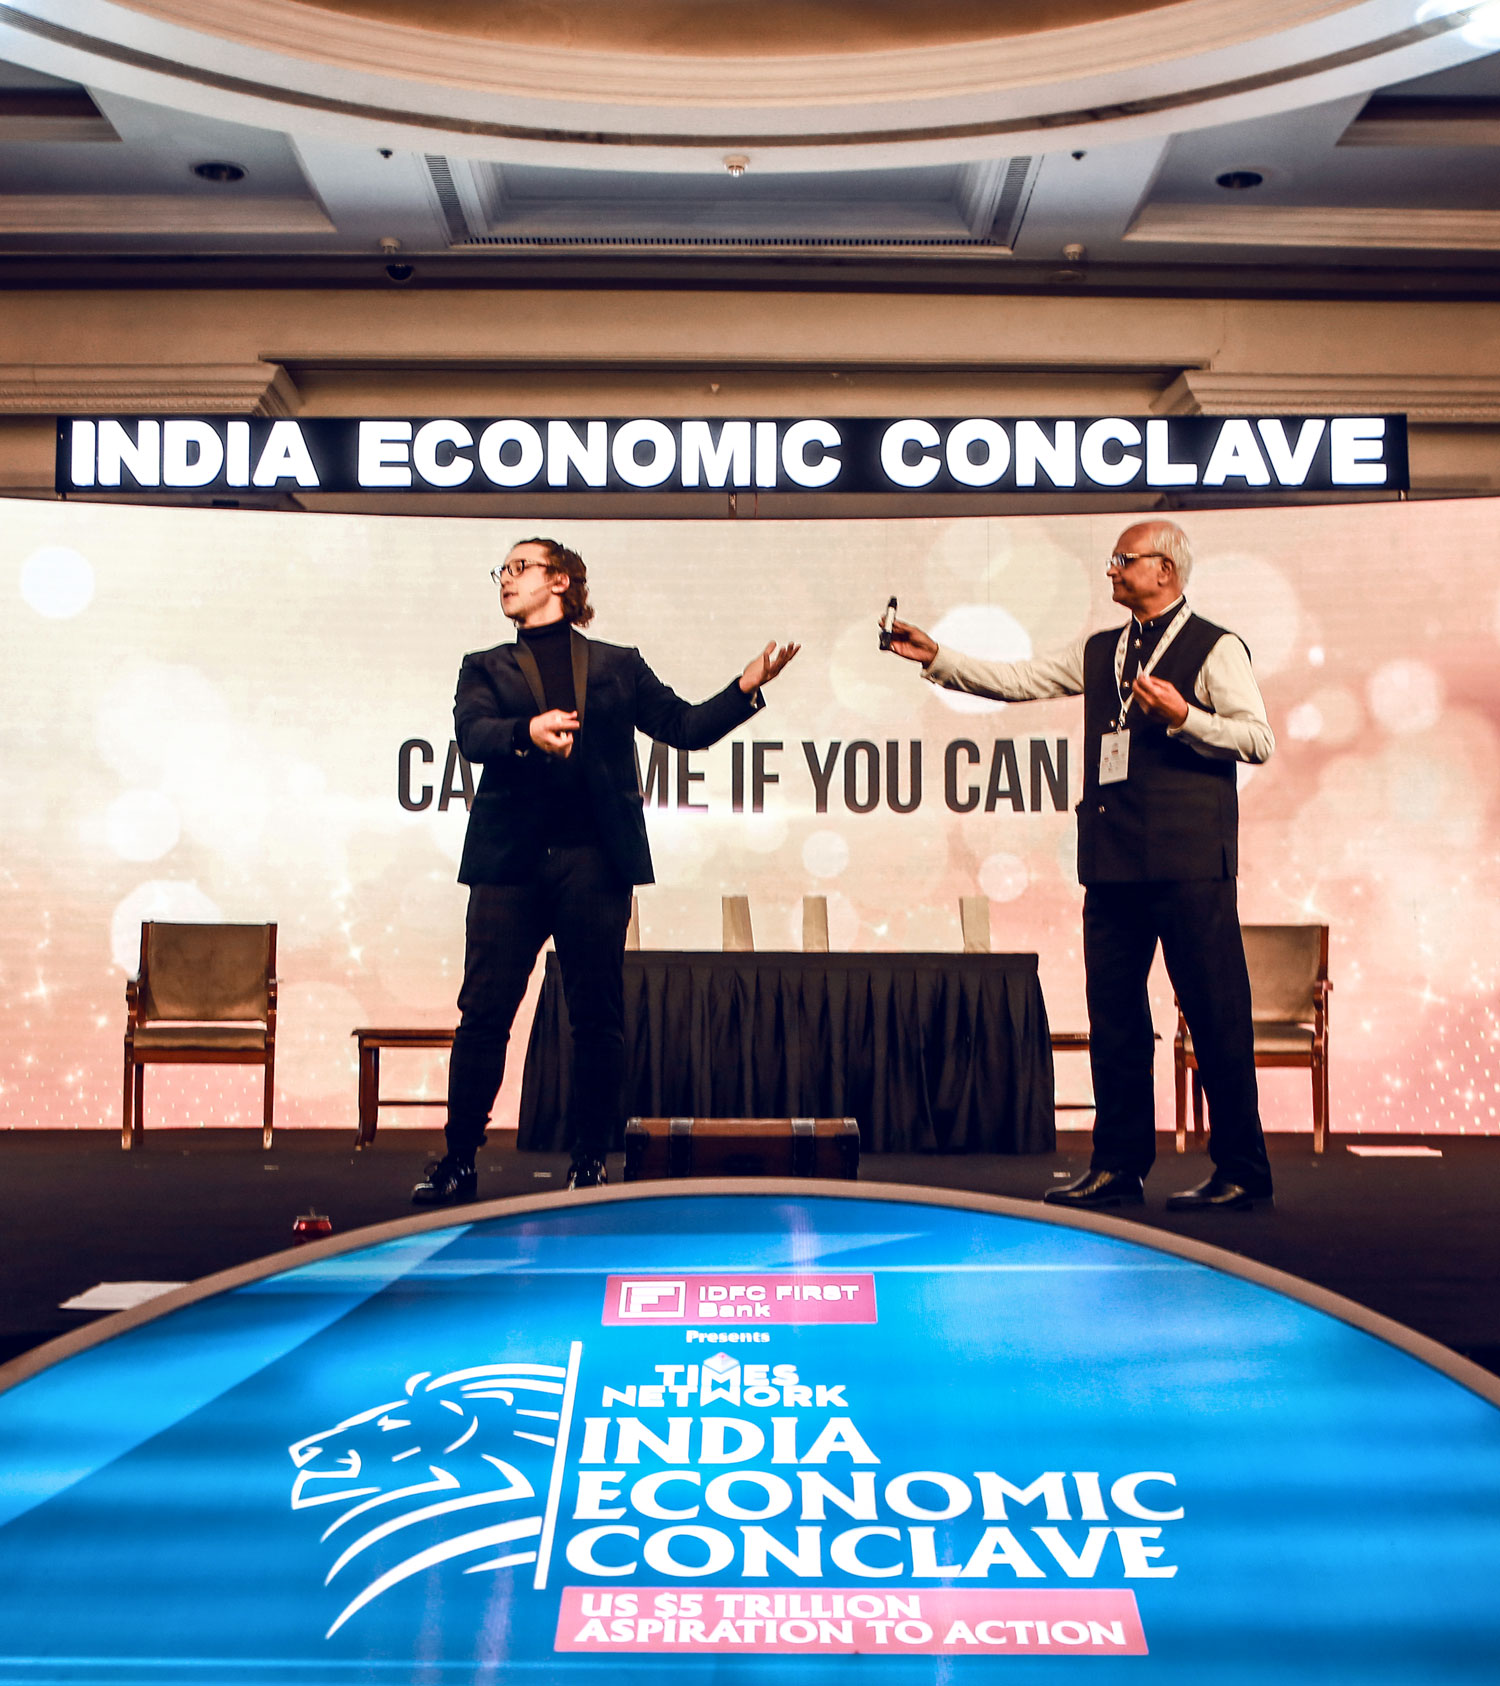 Julius Dein Performing Magic at the India Economic Conclave